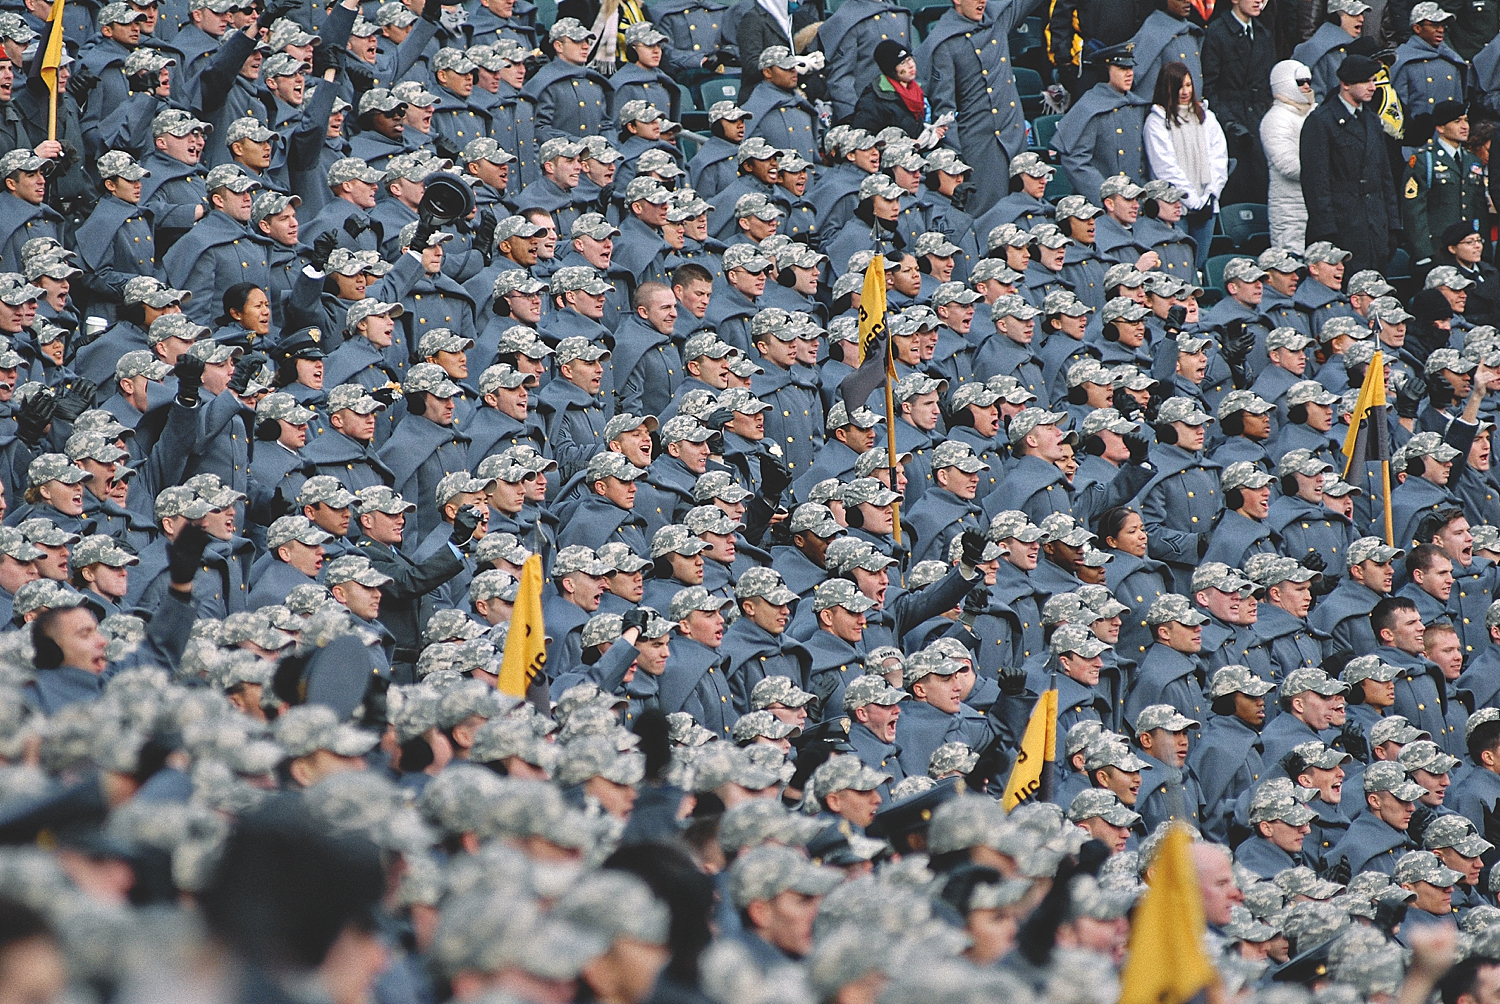 16-cadets-watching-army-navy-game.jpg